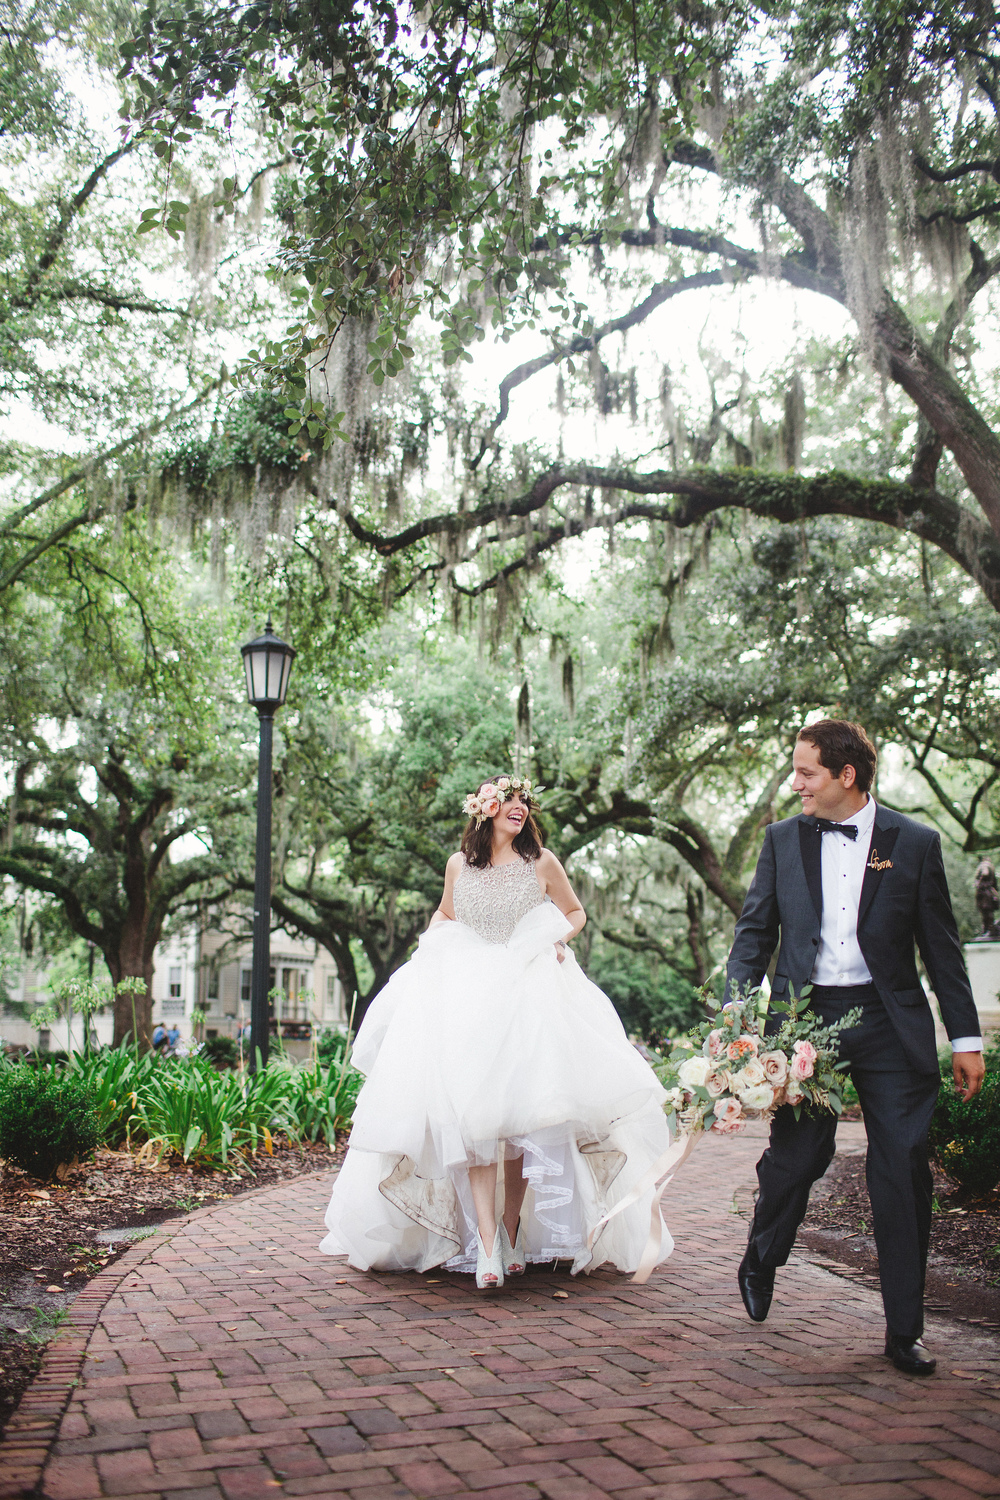 daniela-and-pedro-wedding-izzy-hudgins-photography-a-to-zinnias-whitfield-square-charles-h-morris-center-wedding-ivoyy-and-beau-bridal-boutique-dorie-hayley-paige-savannah-wedding-planner-savannah-bridal-boutique-savannah-weddings-37.jpg